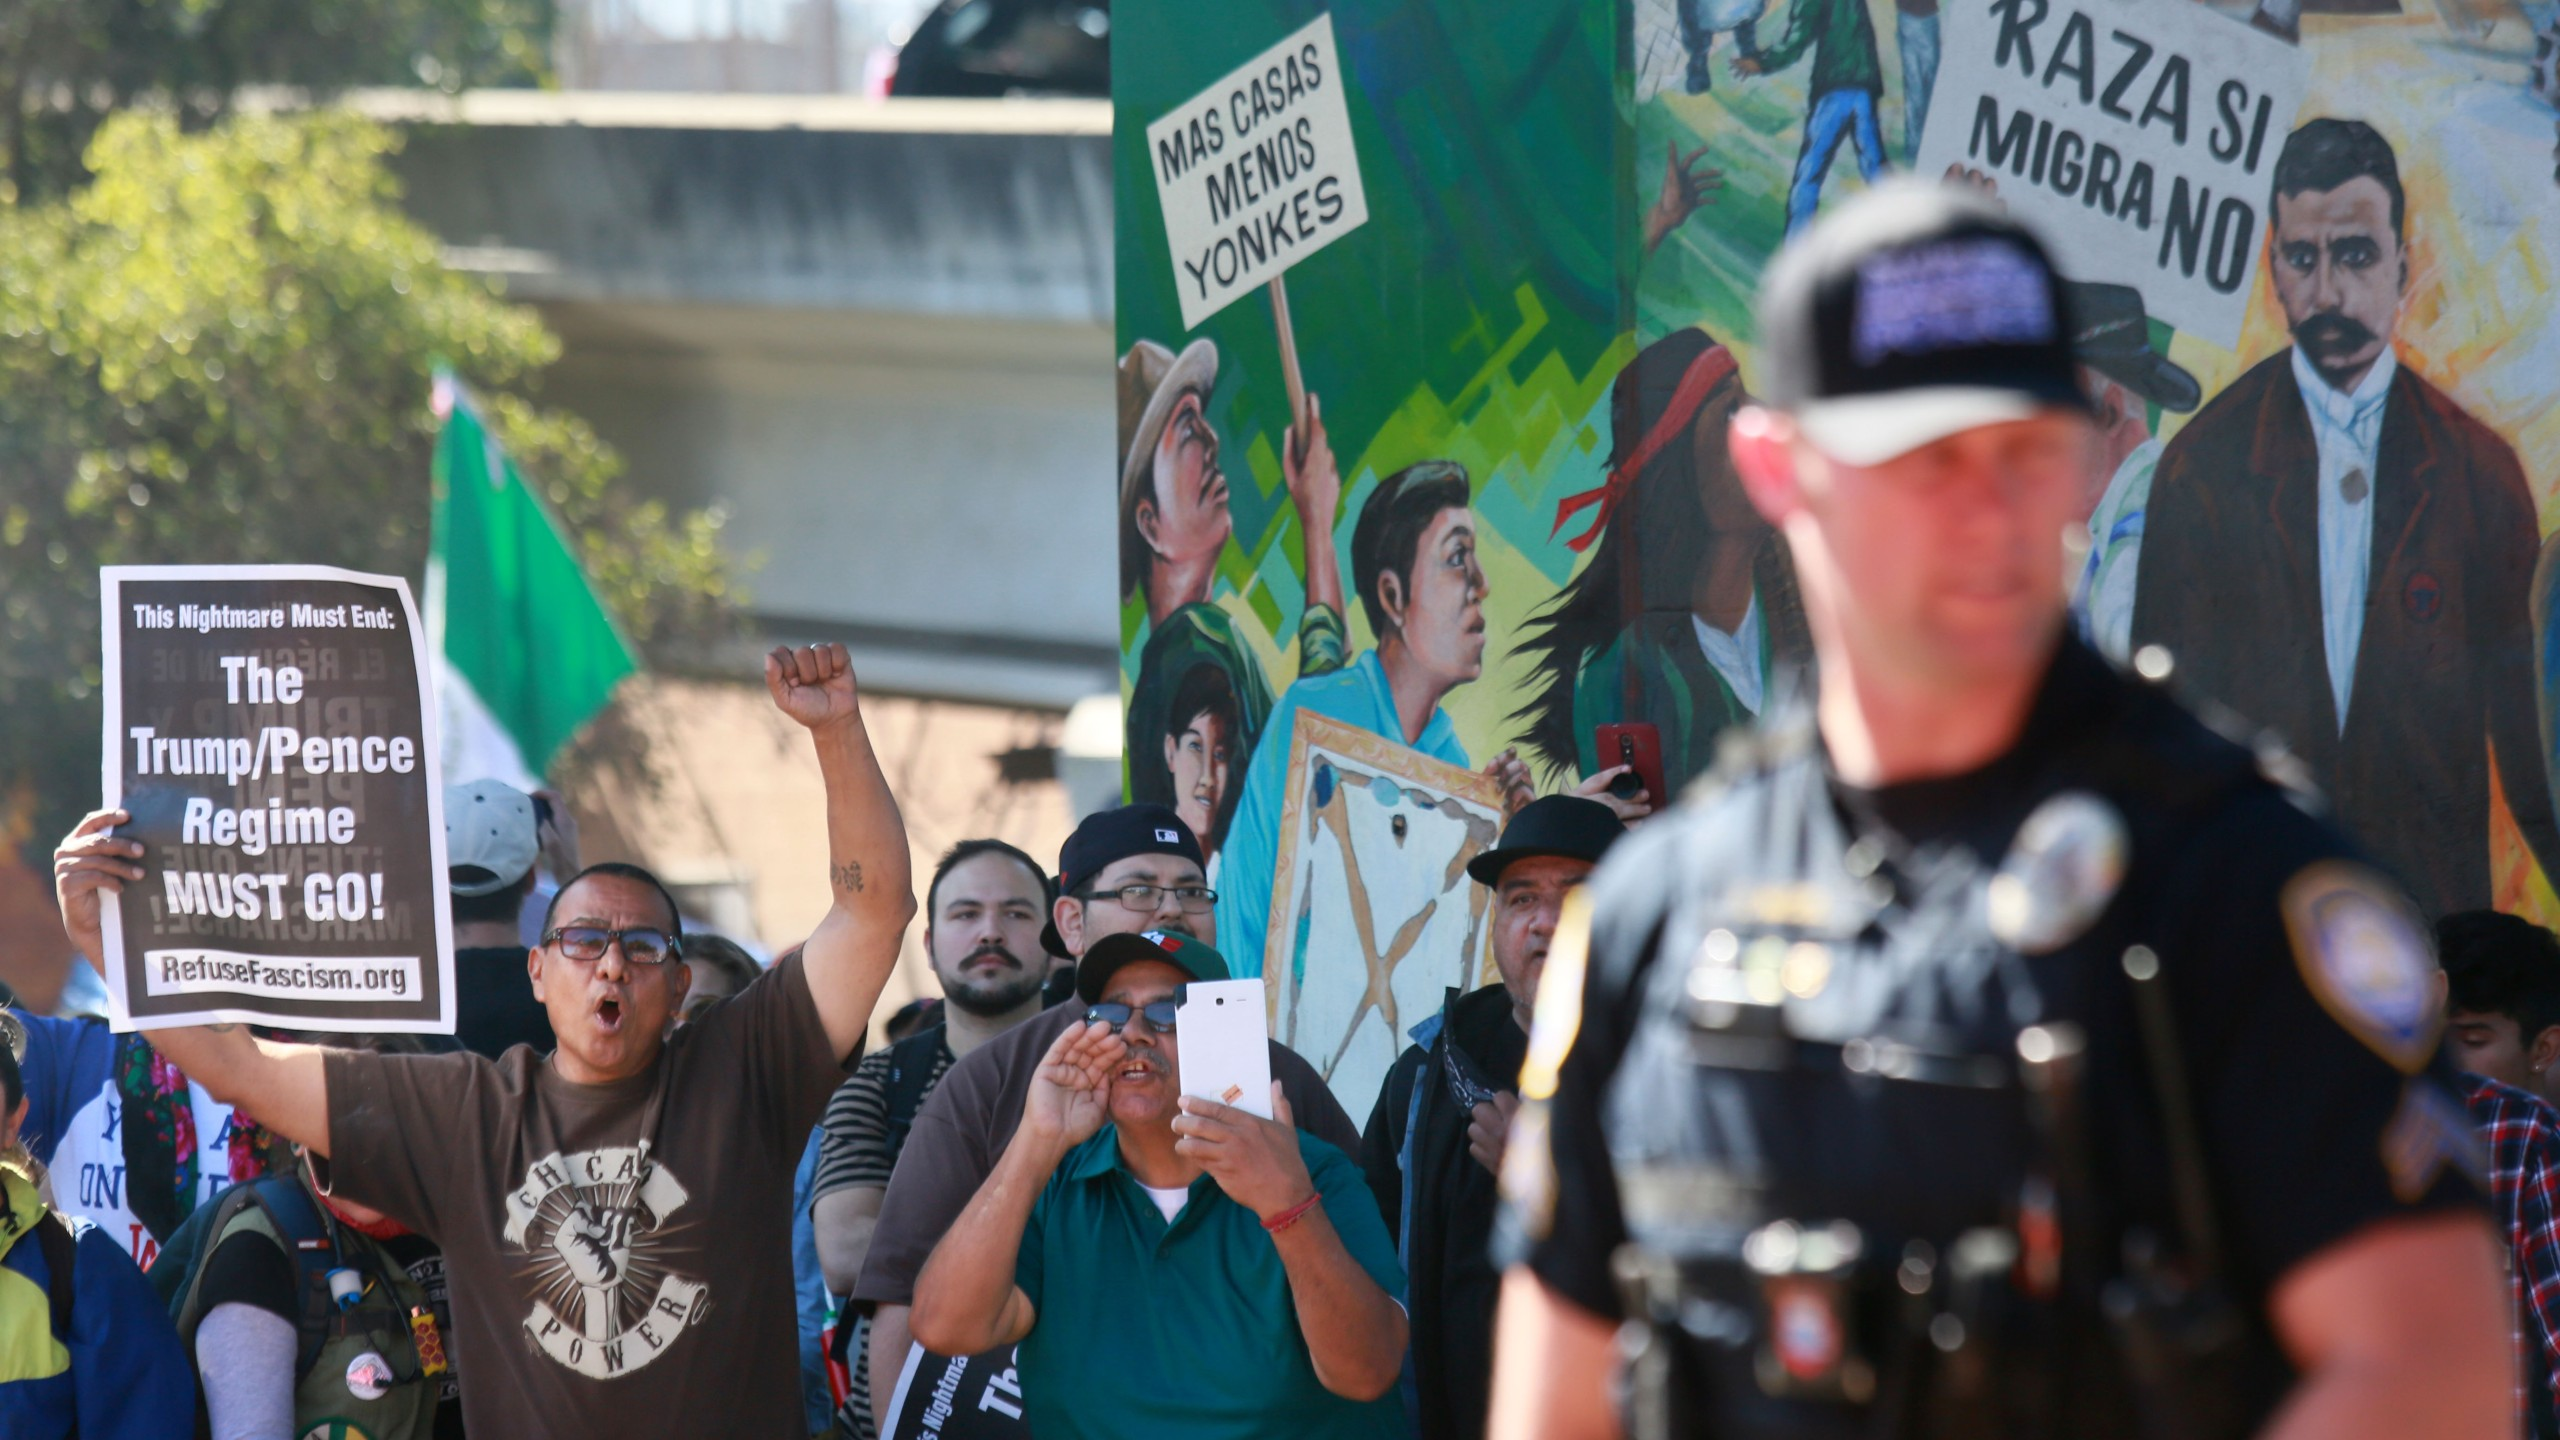 """Counter-demonstators chant during a """"Patriot Picnic"""" demonstration at Chicano Park in San Diego on Feb. 3, 2018. (Credit: Sandy Huffaker / AFP / Getty Images)"""